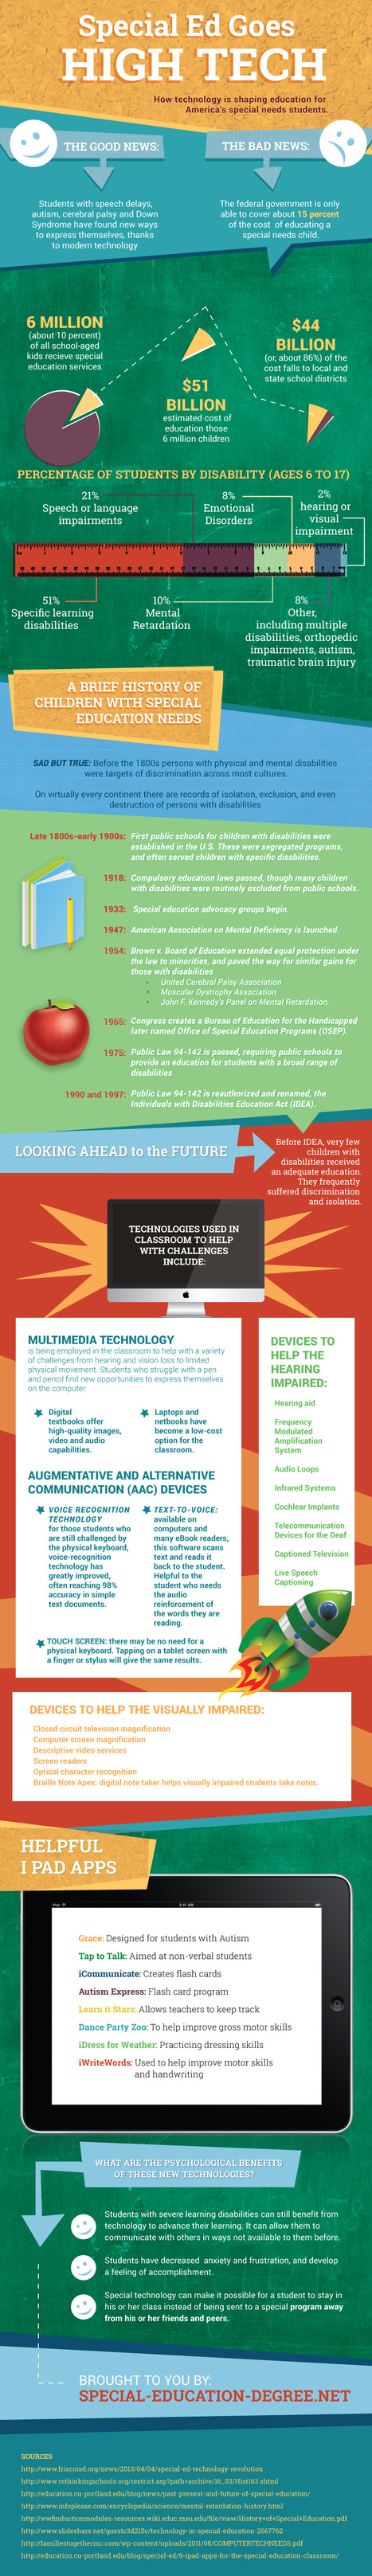 Educational Technology in Special Education Infographic - e-Learning Infographics | Great Teachers + Ed Tech = Learning Success! | Scoop.it